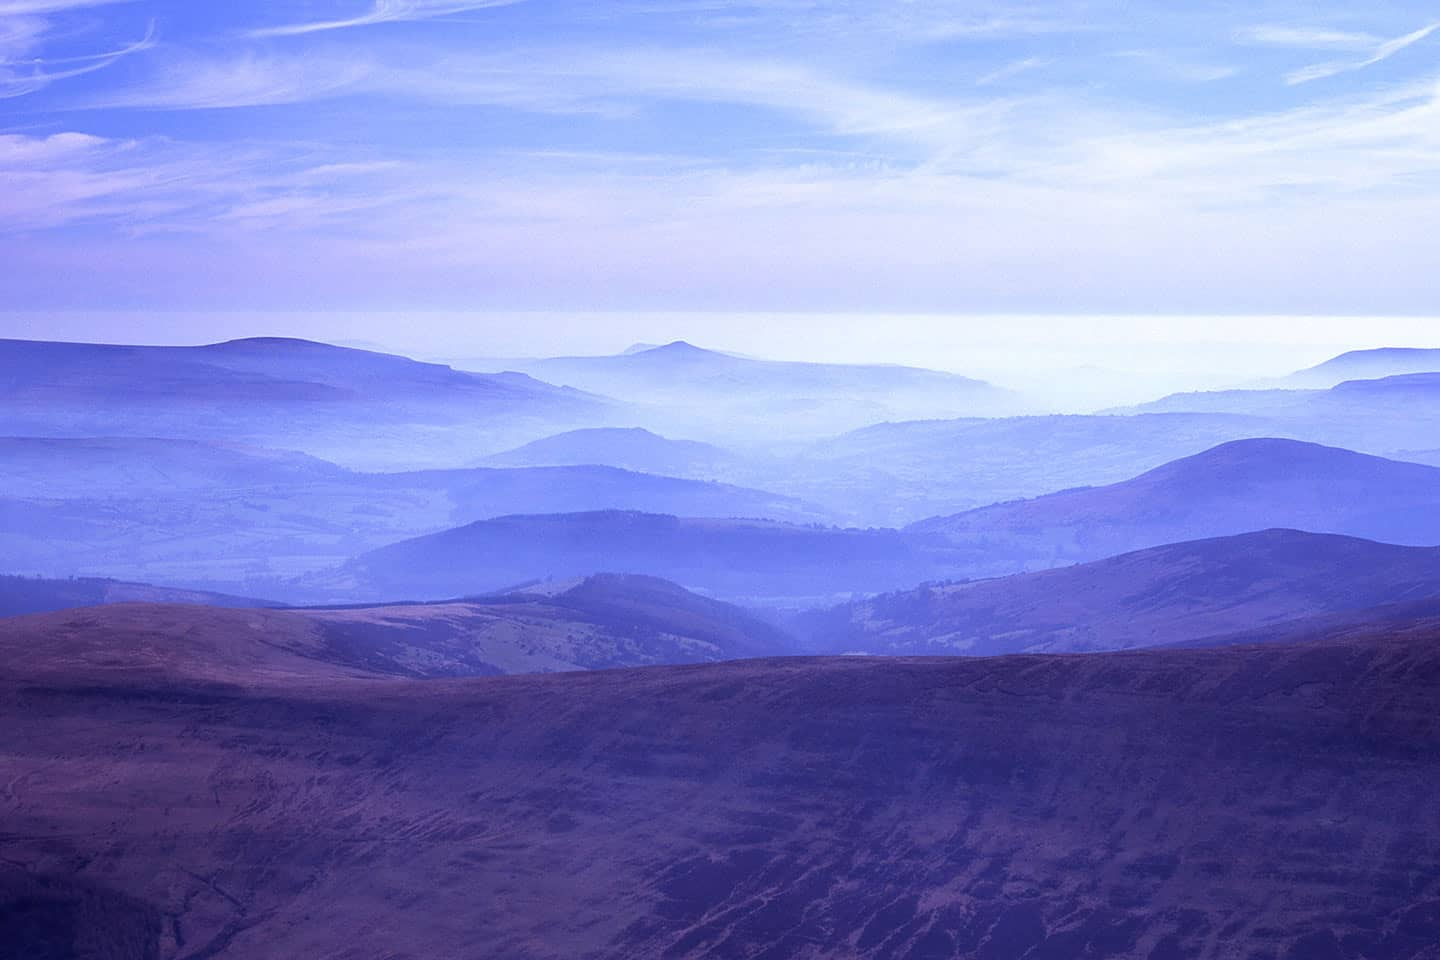 Image of the Brecon Beacons in a morning mist